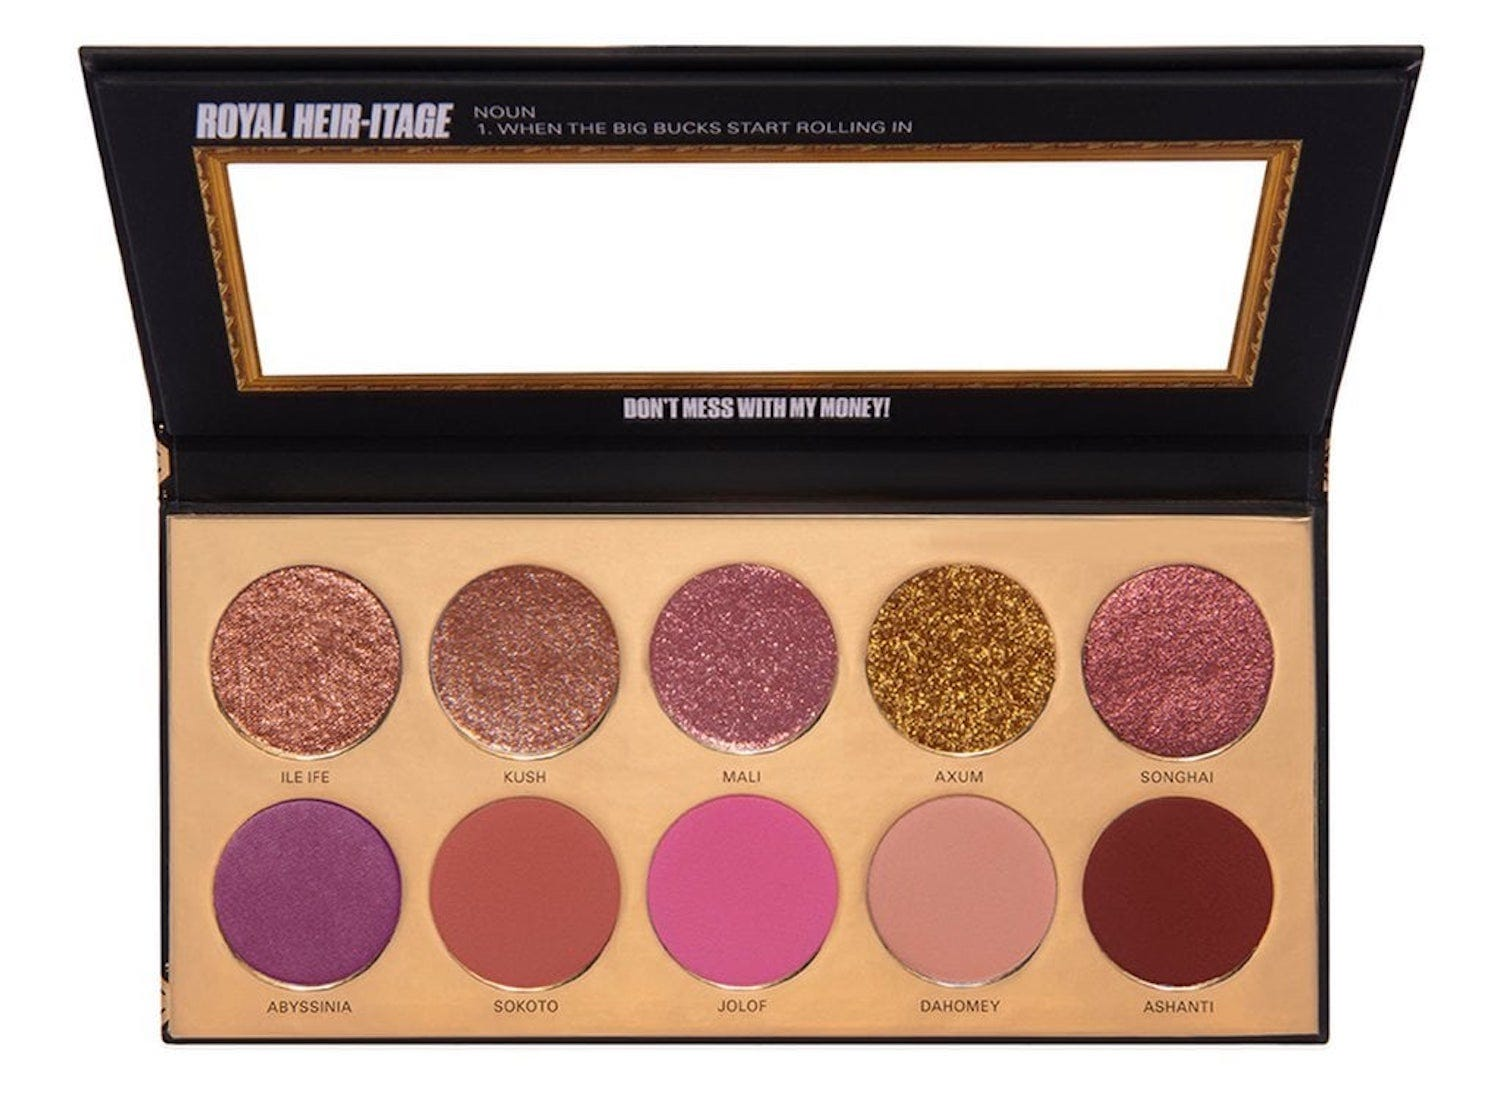 An open eyeshadow palette with ten purple, pink, and gold shadows